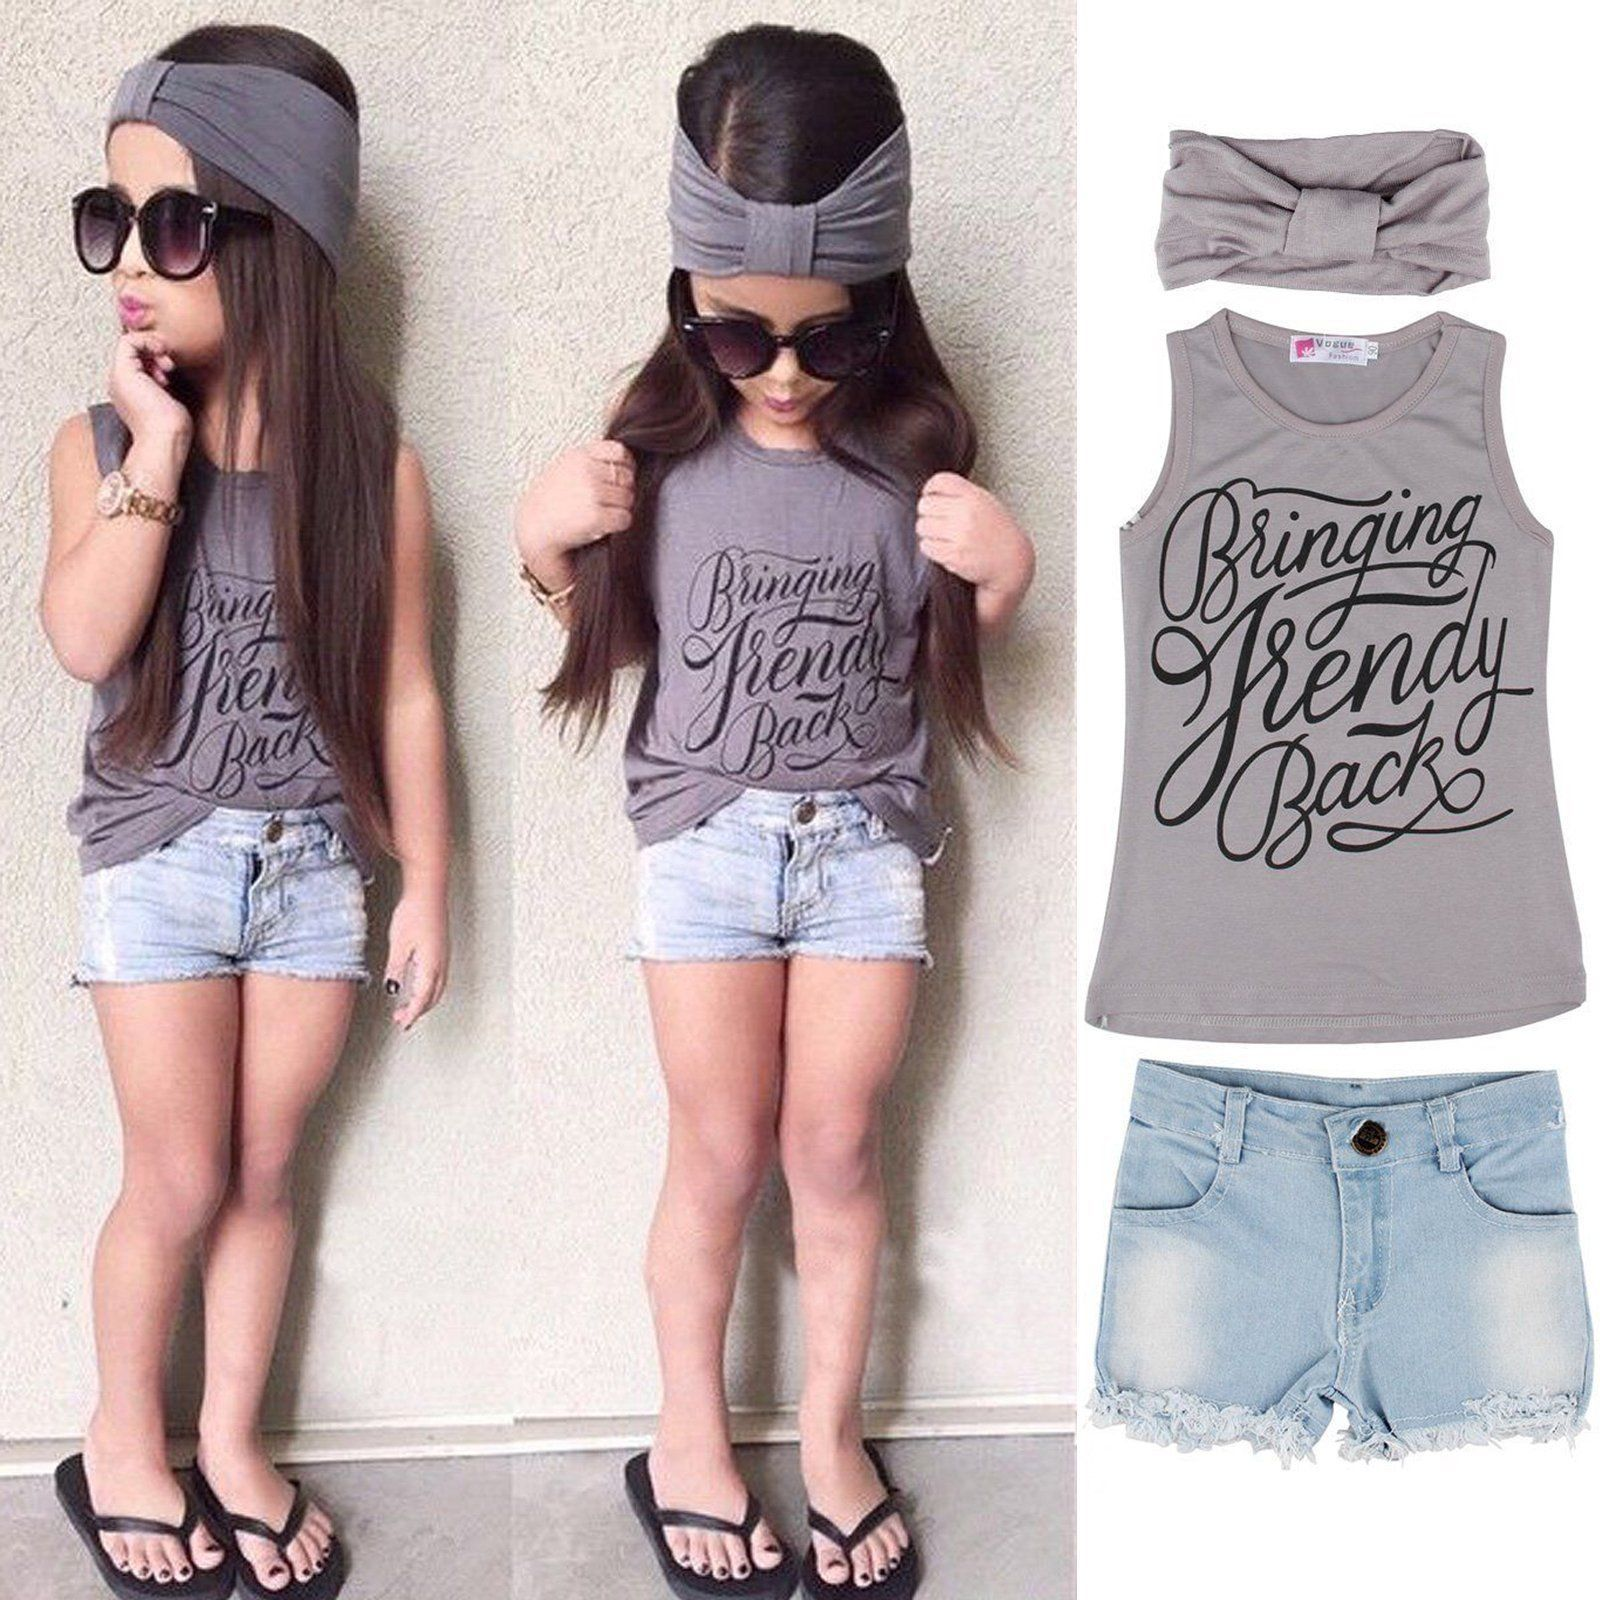 Details about Outfits & Sets Kids Toddler Baby Girl Headband+Top T-shirt+Jeans Pants Clothes